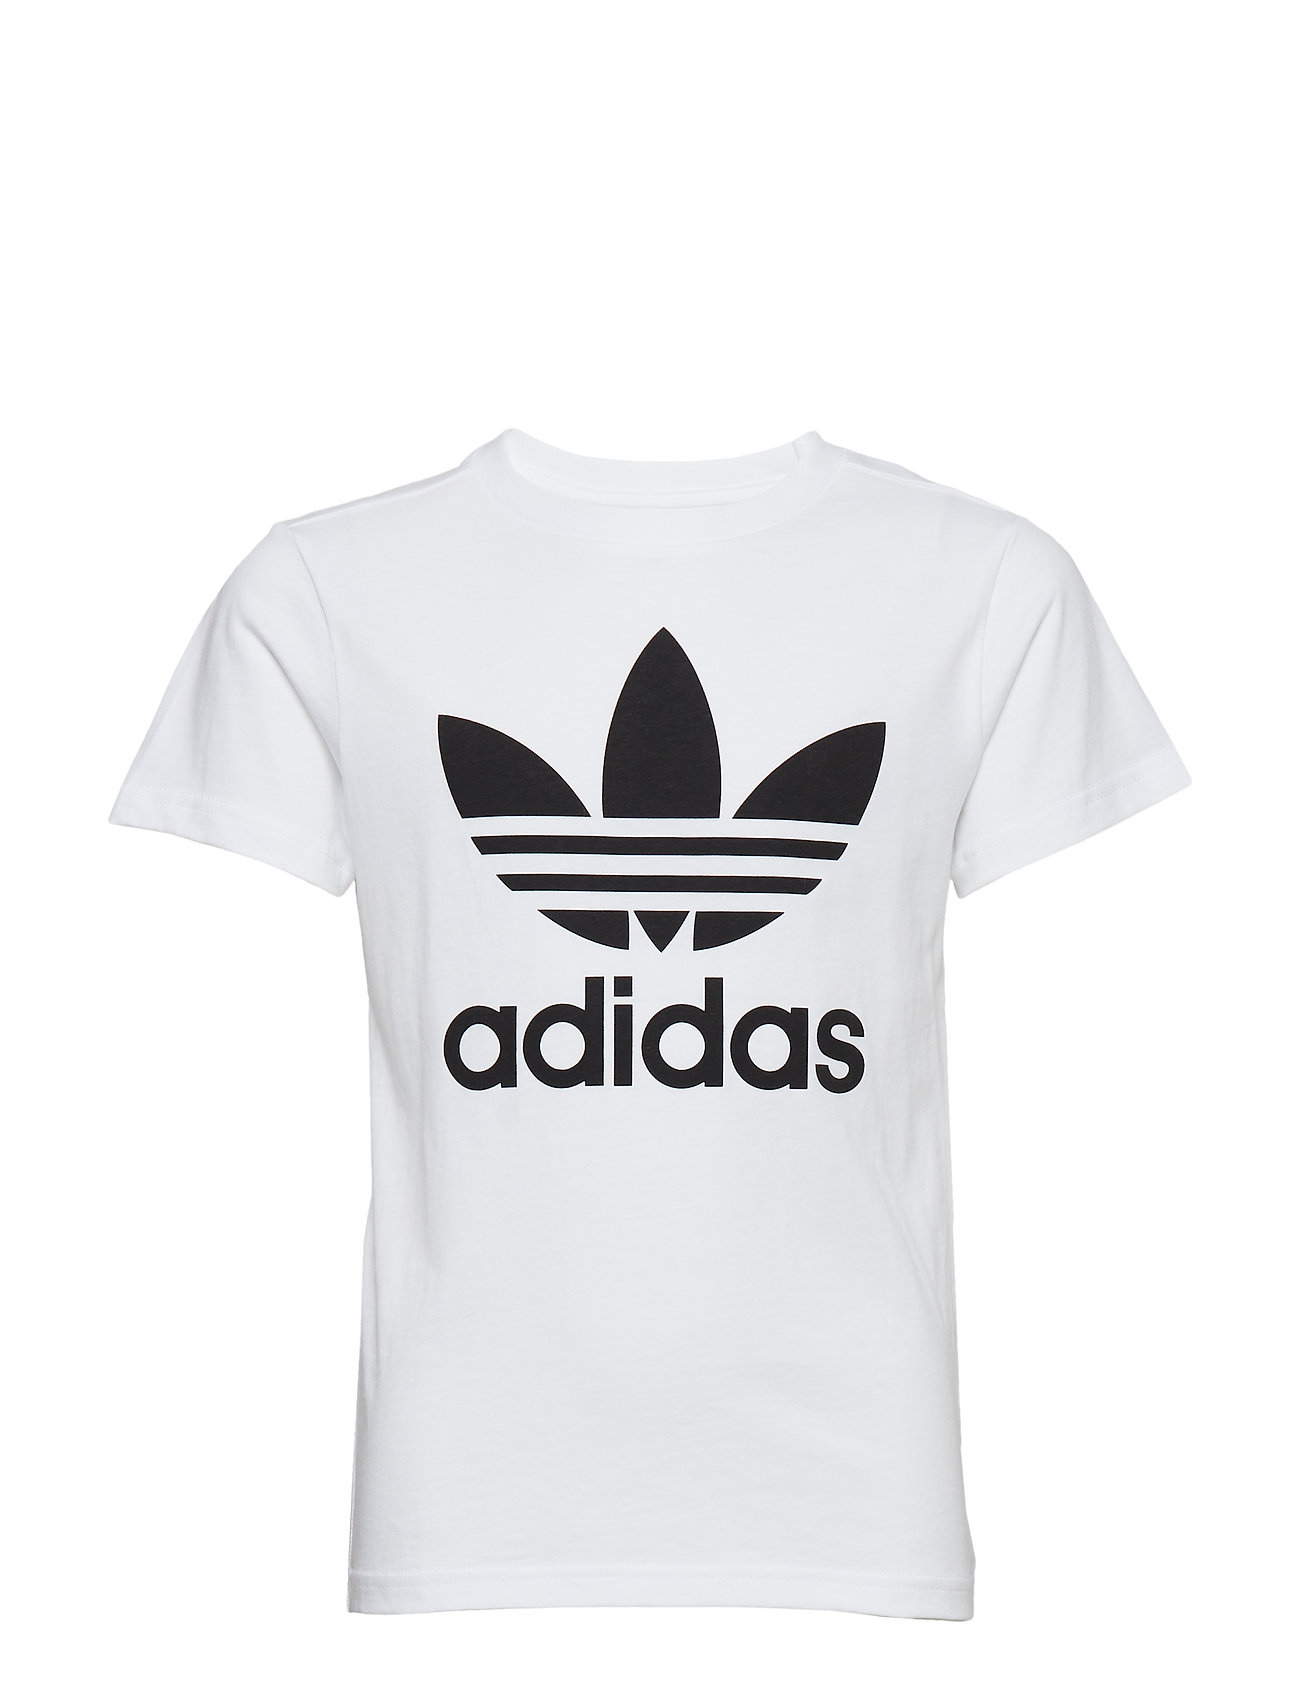 adidas Originals TREFOIL TEE - WHITE/BLACK